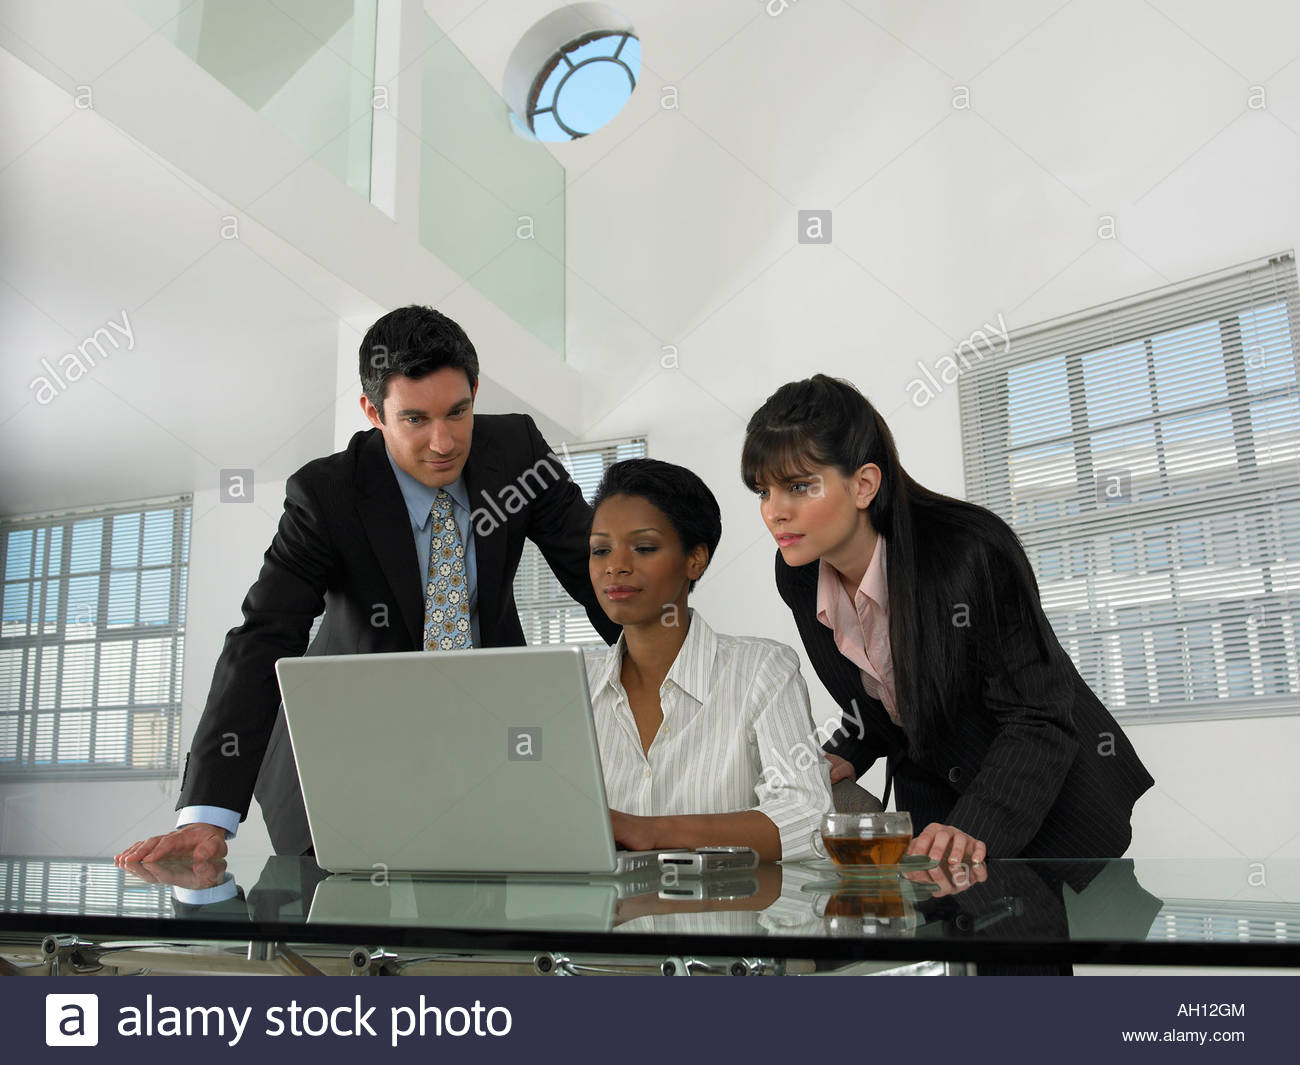 A businesswoman on a laptop with two co-workers behind her - Stock Image